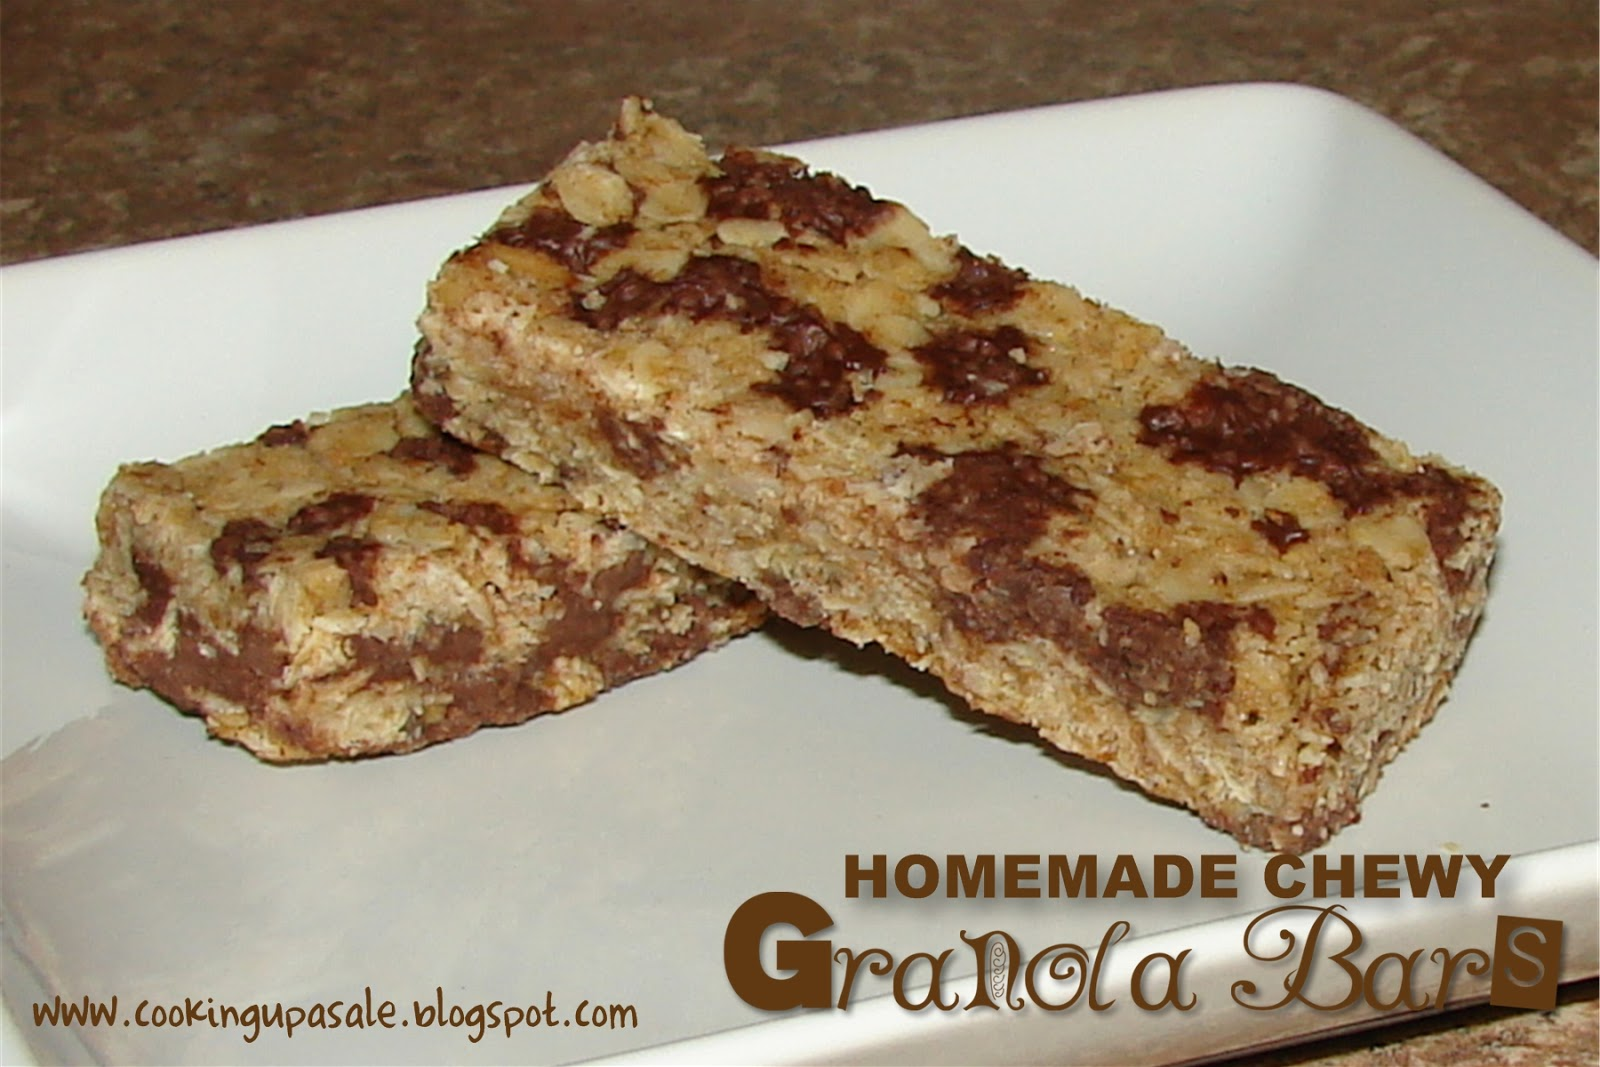 Cooking Up a Sale: Homemade Chewy Granola Bars